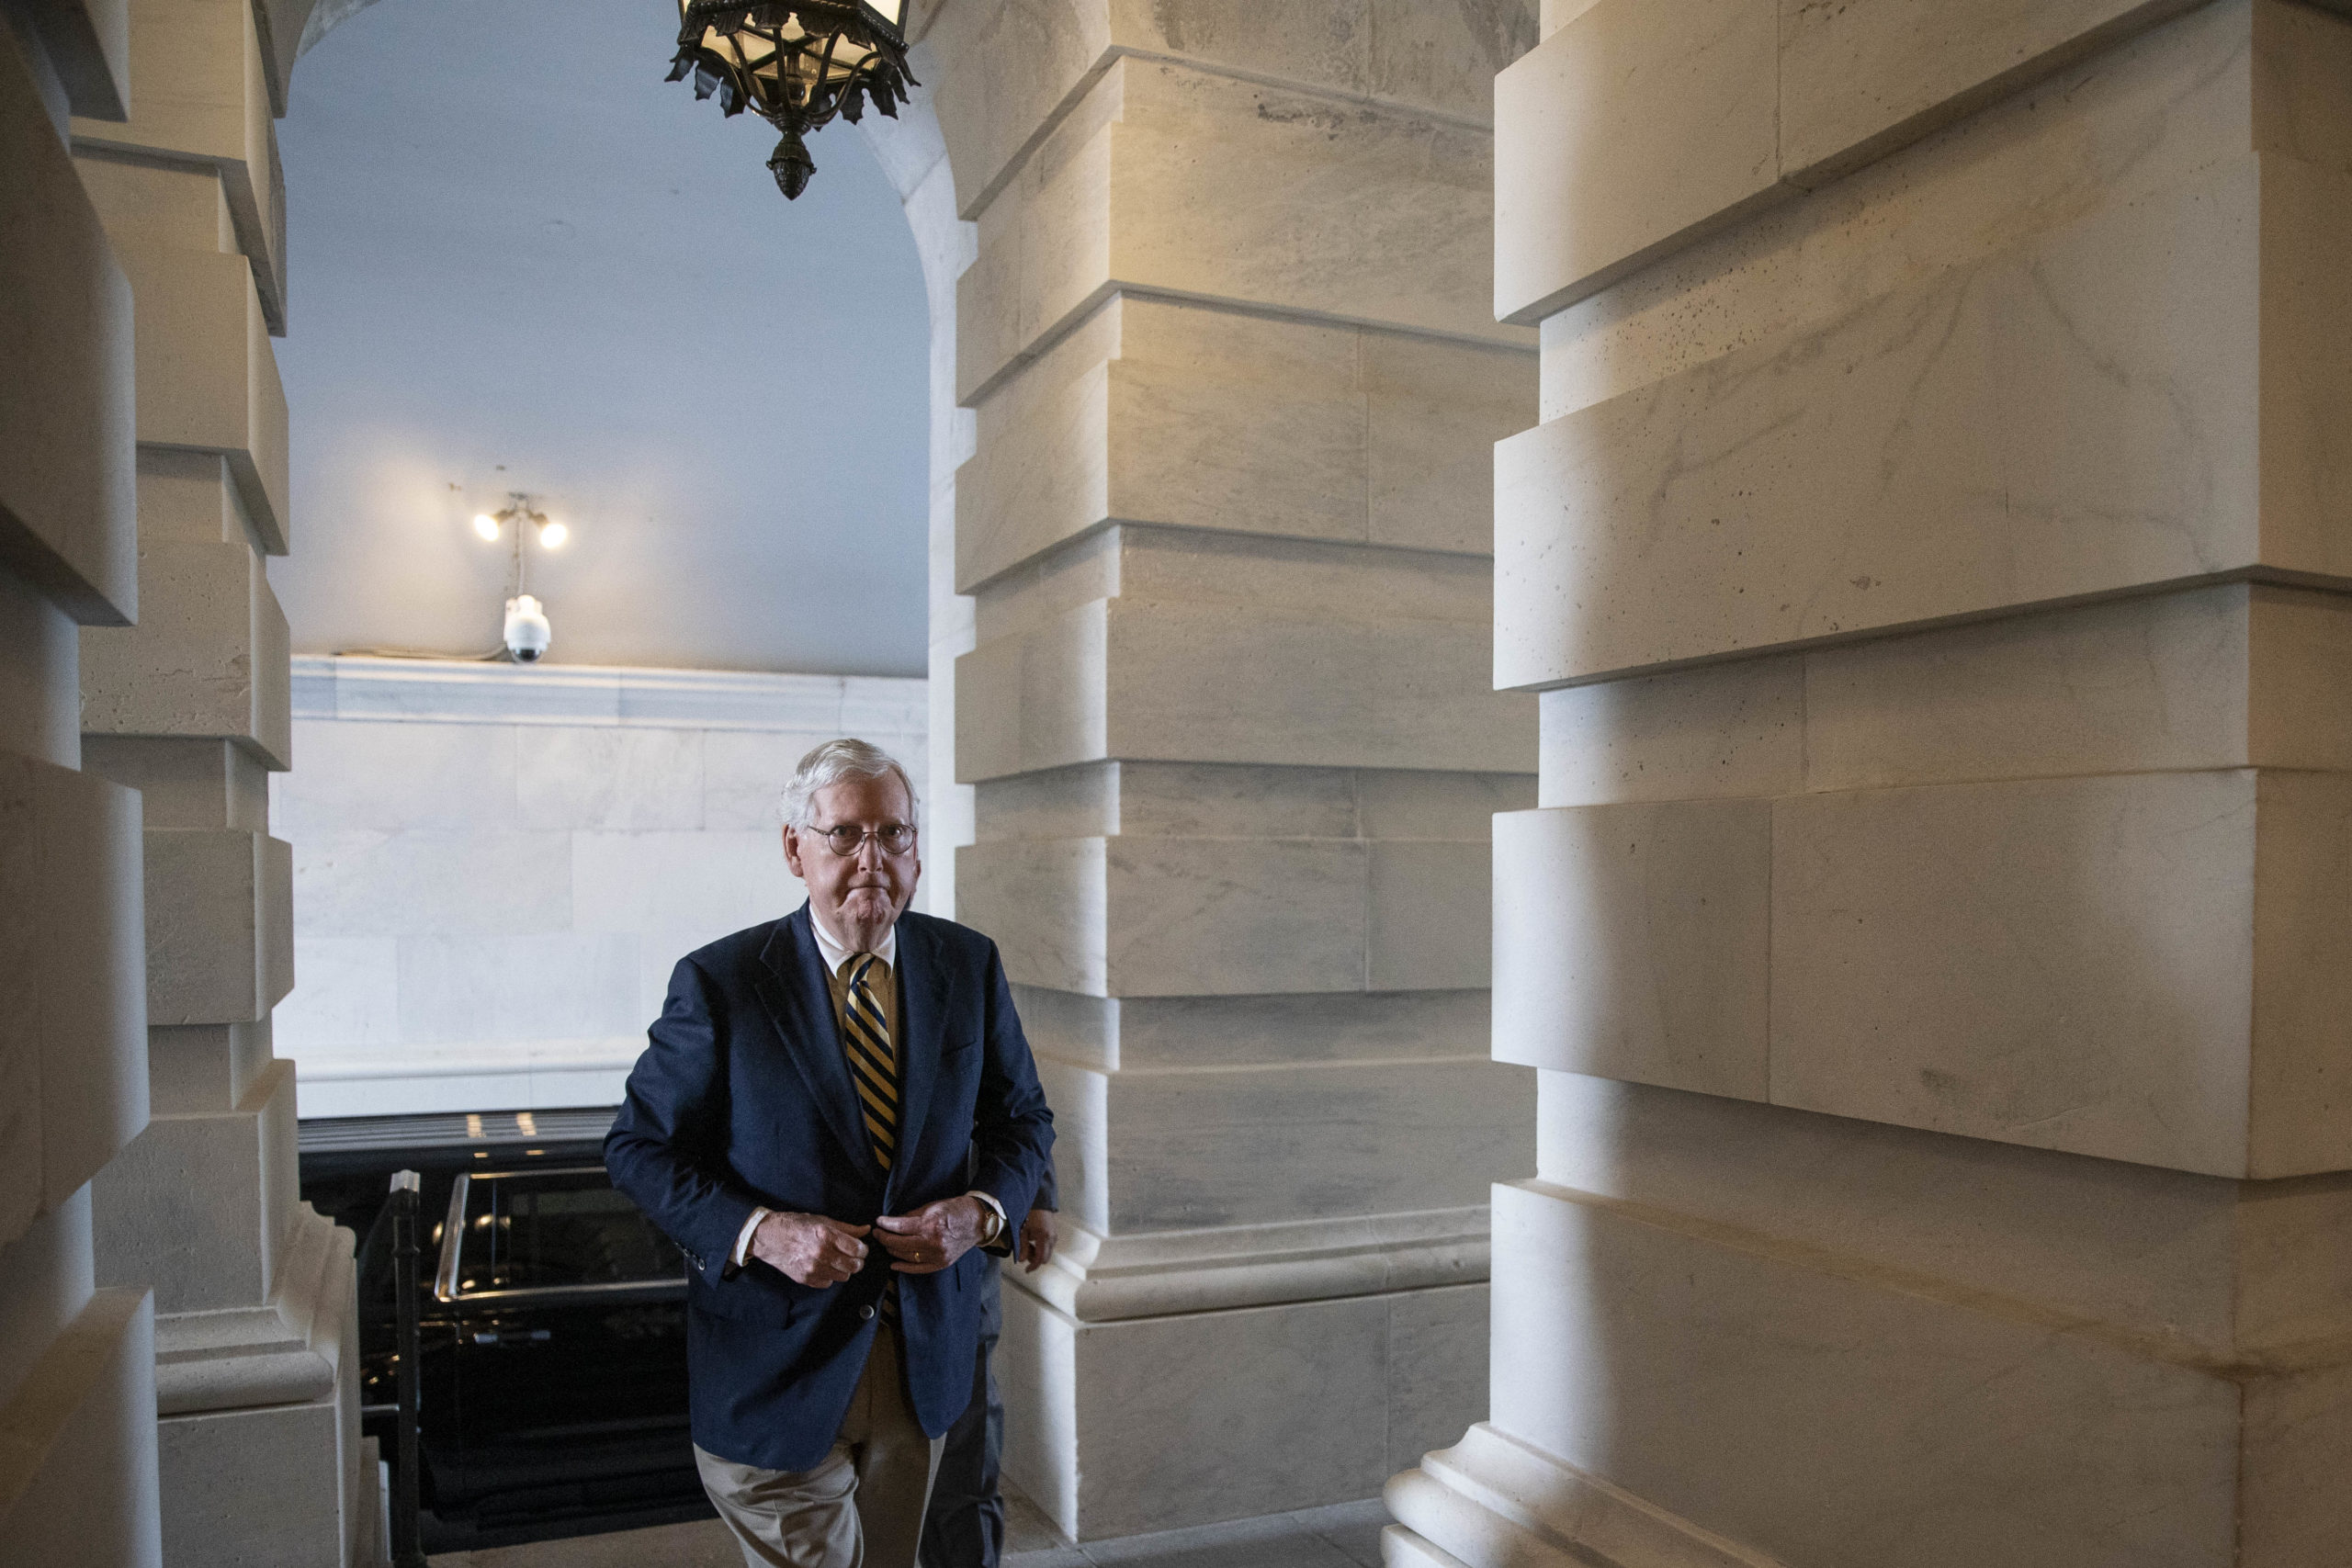 Senate Minority Leader Mitch McConnell arrives to the Capitol Saturday during a rare weekend session. (Sarah Silbiger/Getty Images)